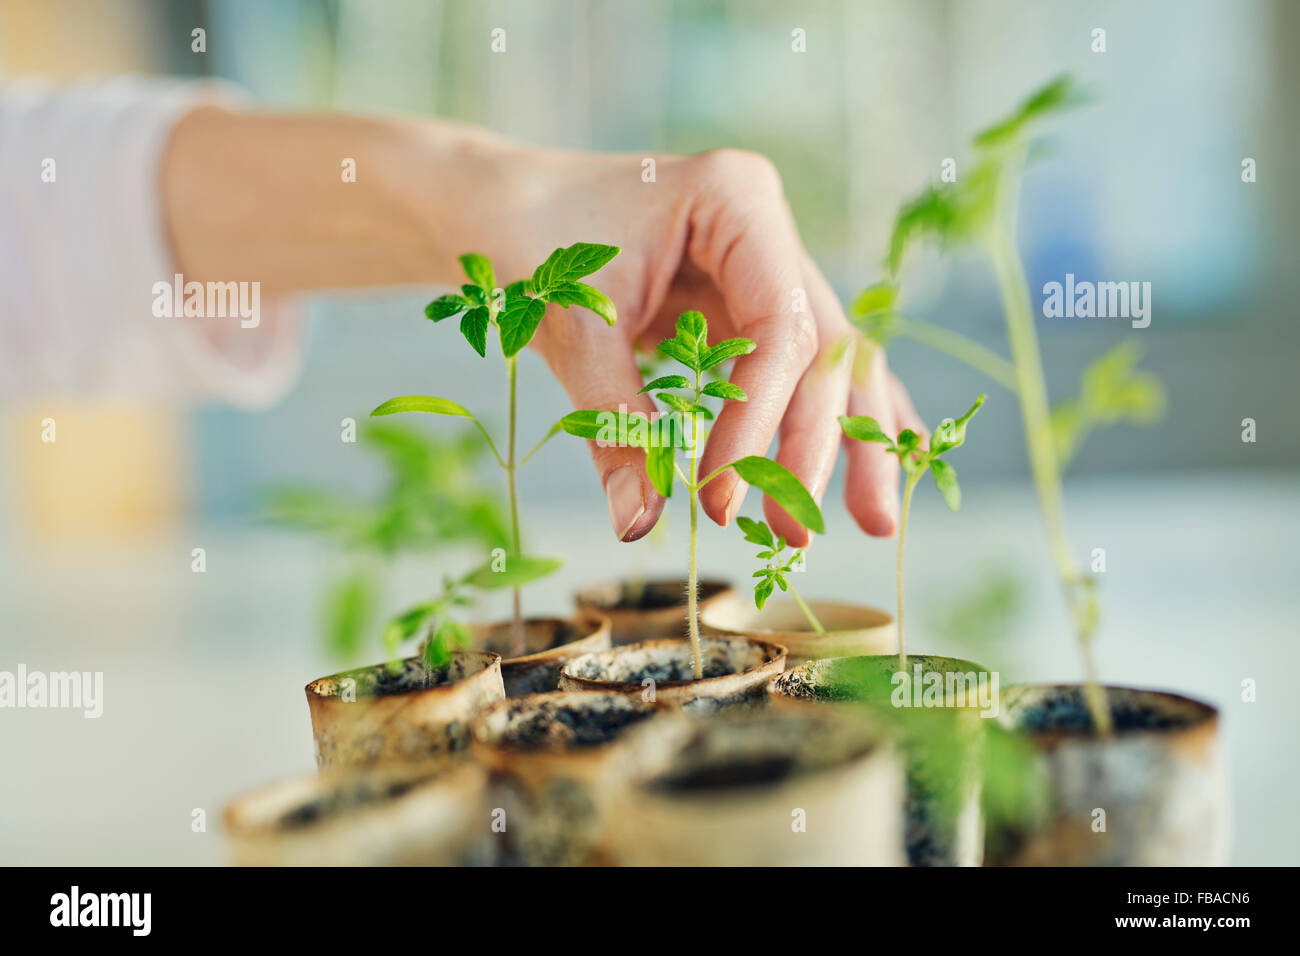 Finland, Woman´s hand holding tomato seedling - Stock Image